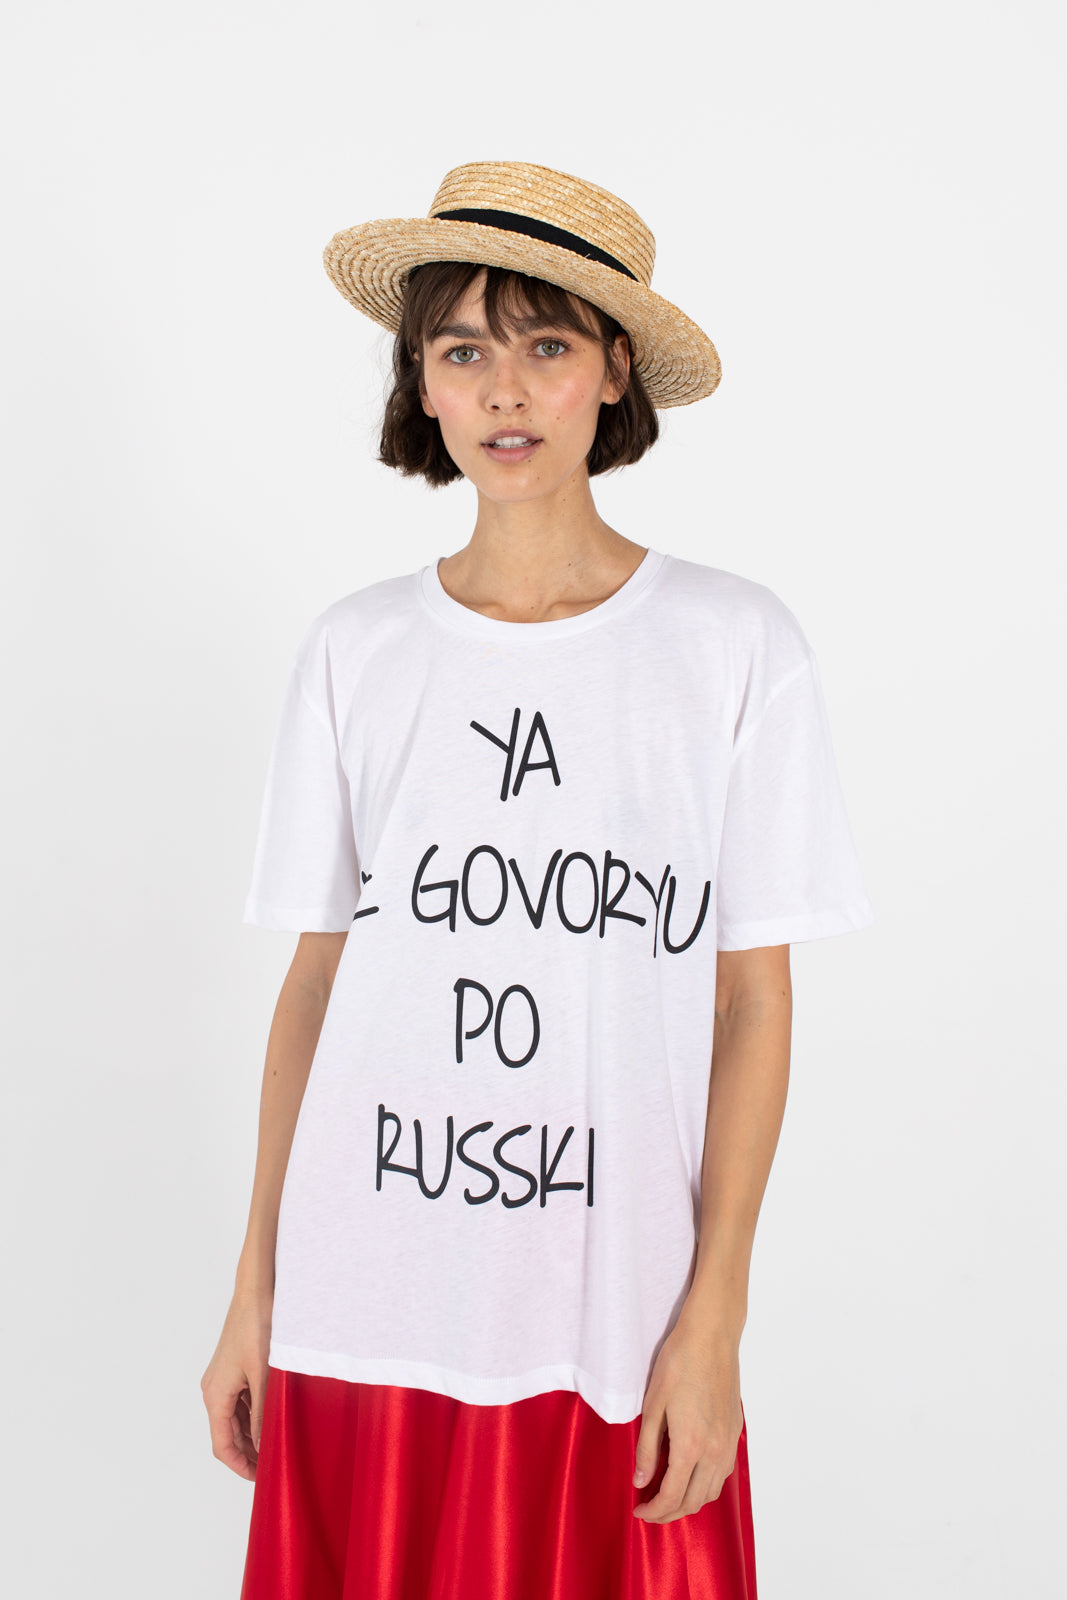 RUSSKI-White-Organic-Cotton-tshirt-ya-negovoryu-po-russki-eco-clothing.jpg